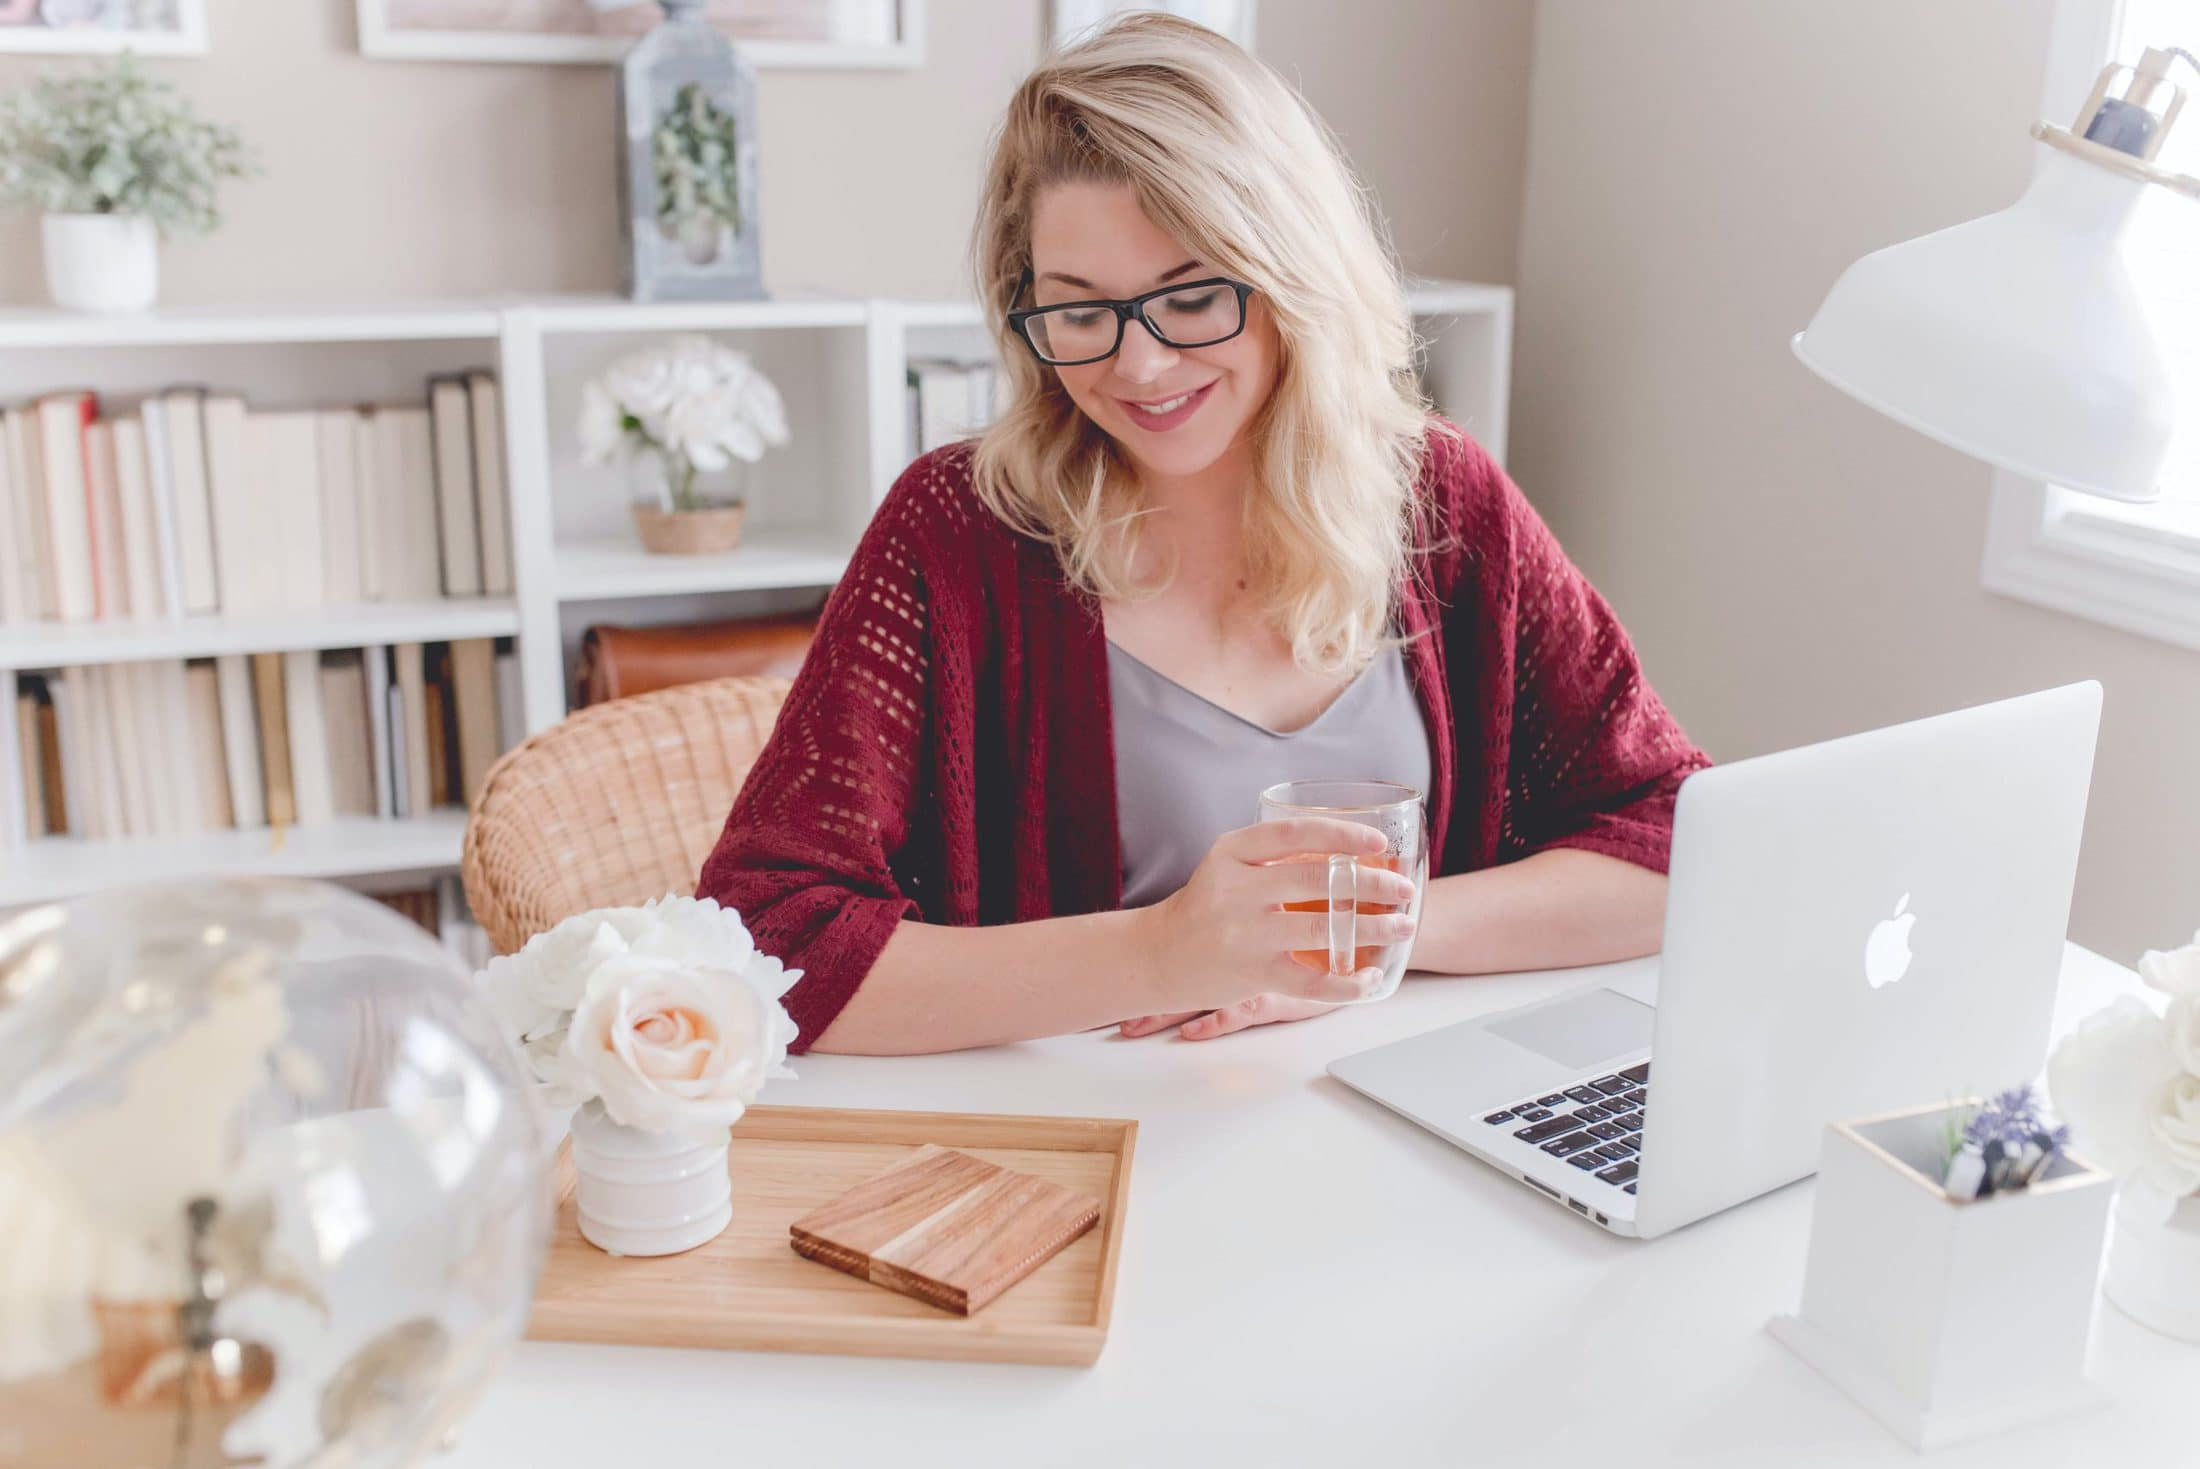 woman smiling holding glass mug sitting beside table with MacBook